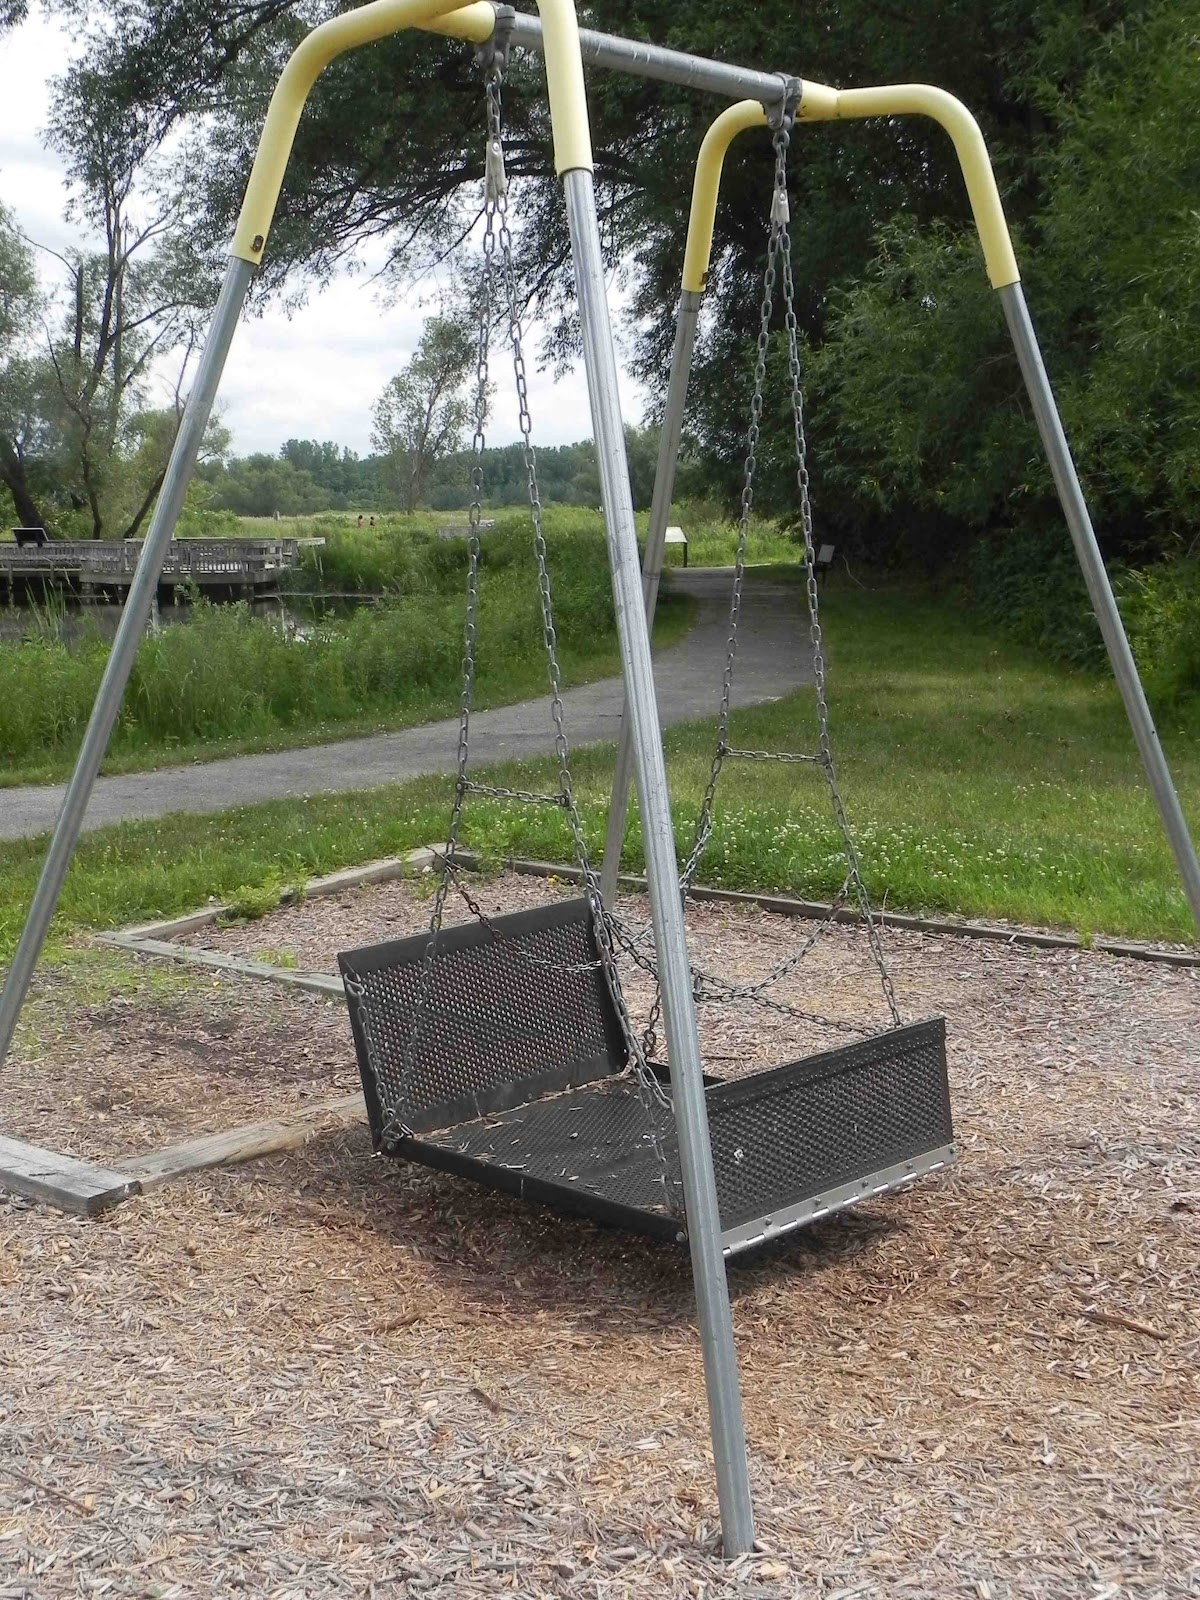 The swings have fold down ends to allow roll on roll off entrance